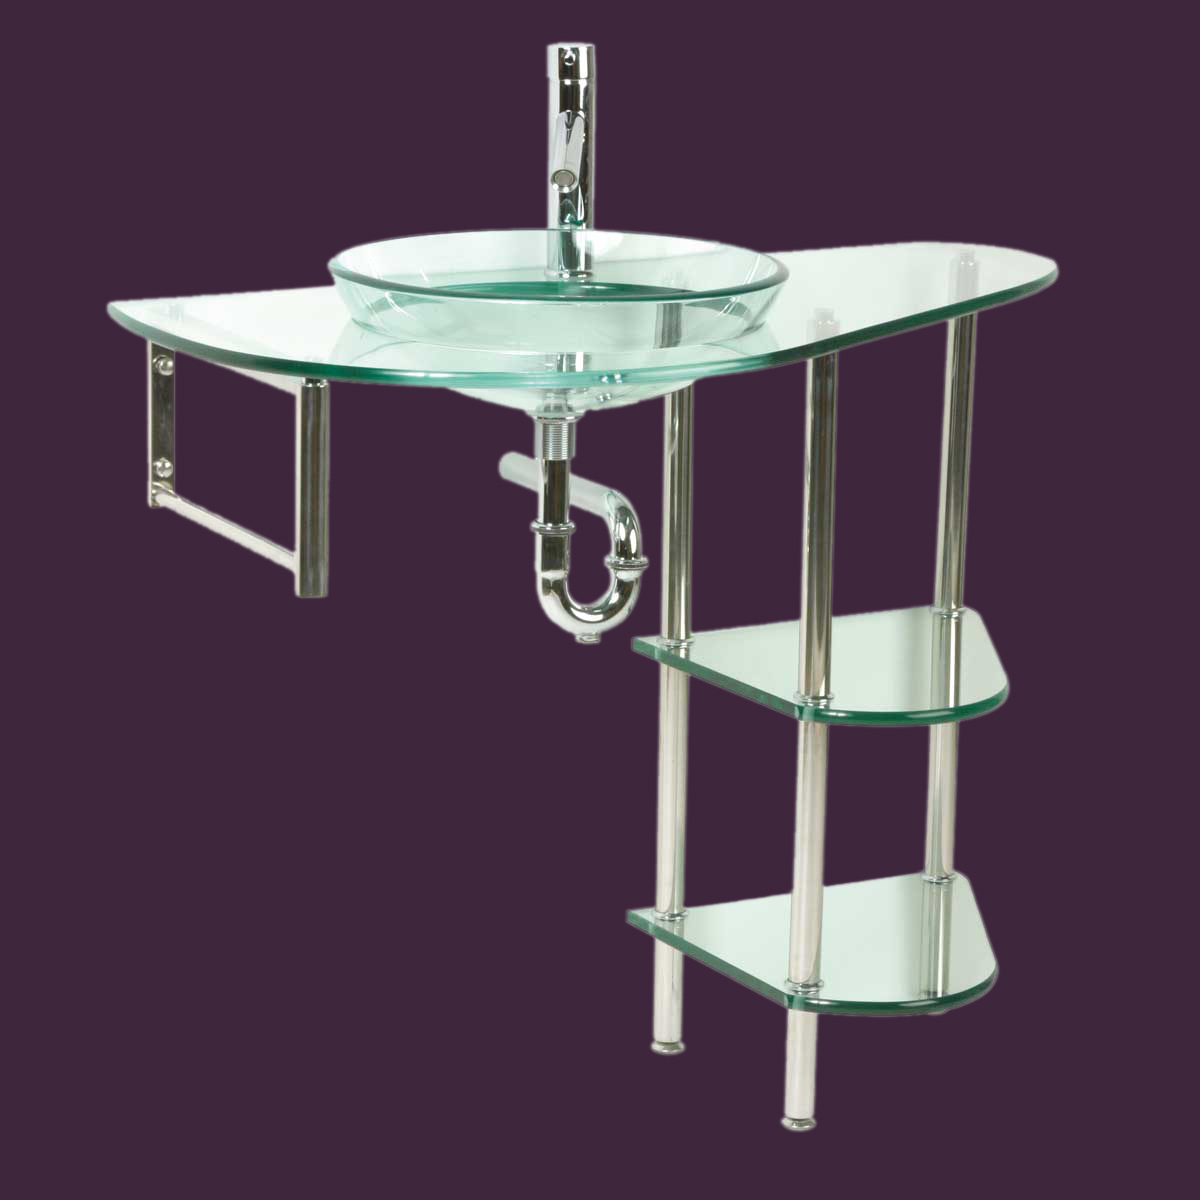 Glass Wall Mount Sink : Bathroom Clear Glass Console Sink Stainless Shelf Wall Mount